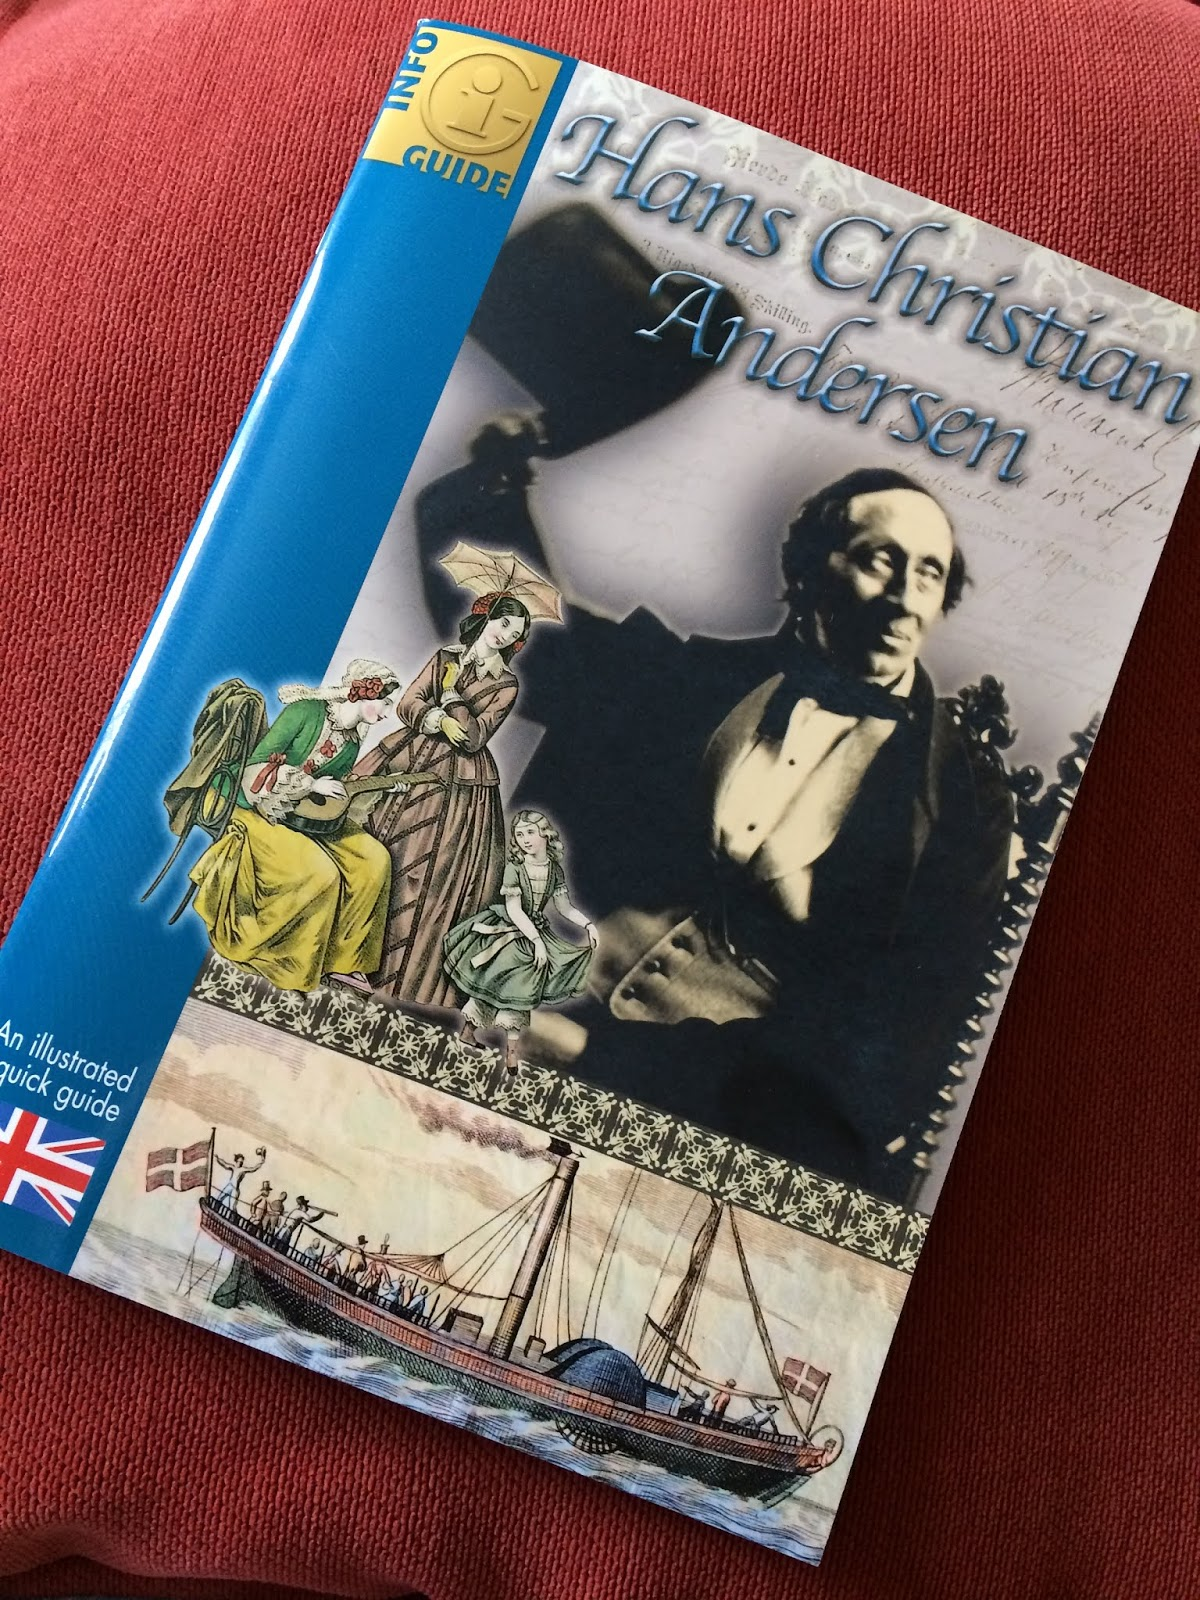 Photo of Hans Christian Andersen Info Guide